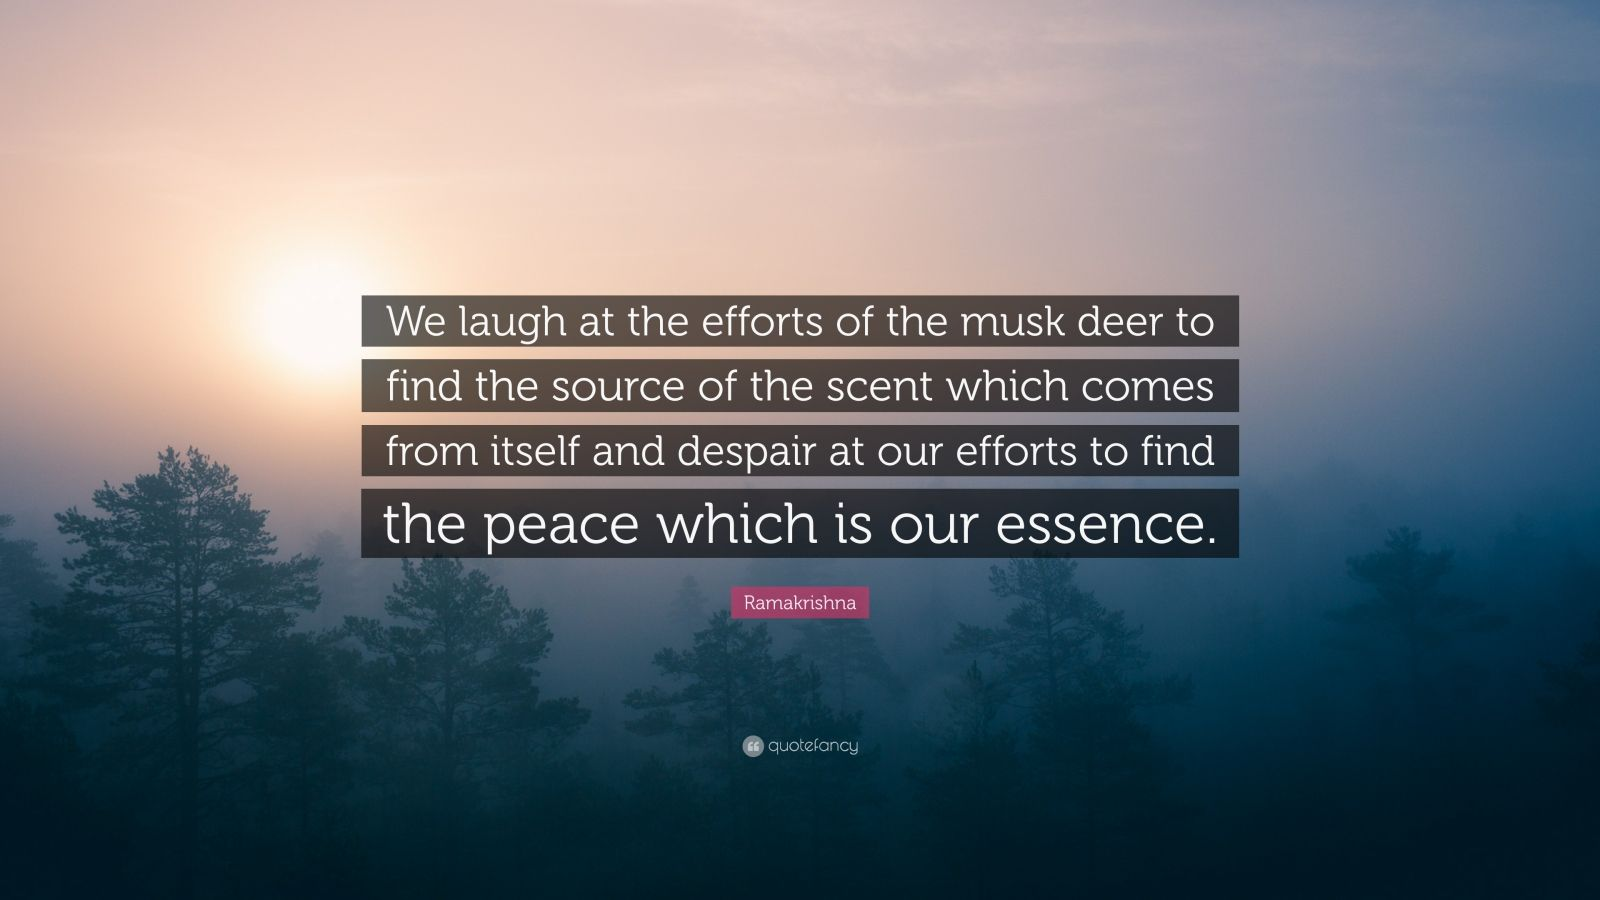 """Ramakrishna Quote: """"We laugh at the efforts of the musk deer to find the source of the scent which comes from itself and despair at our efforts to find the peace which is our essence."""""""